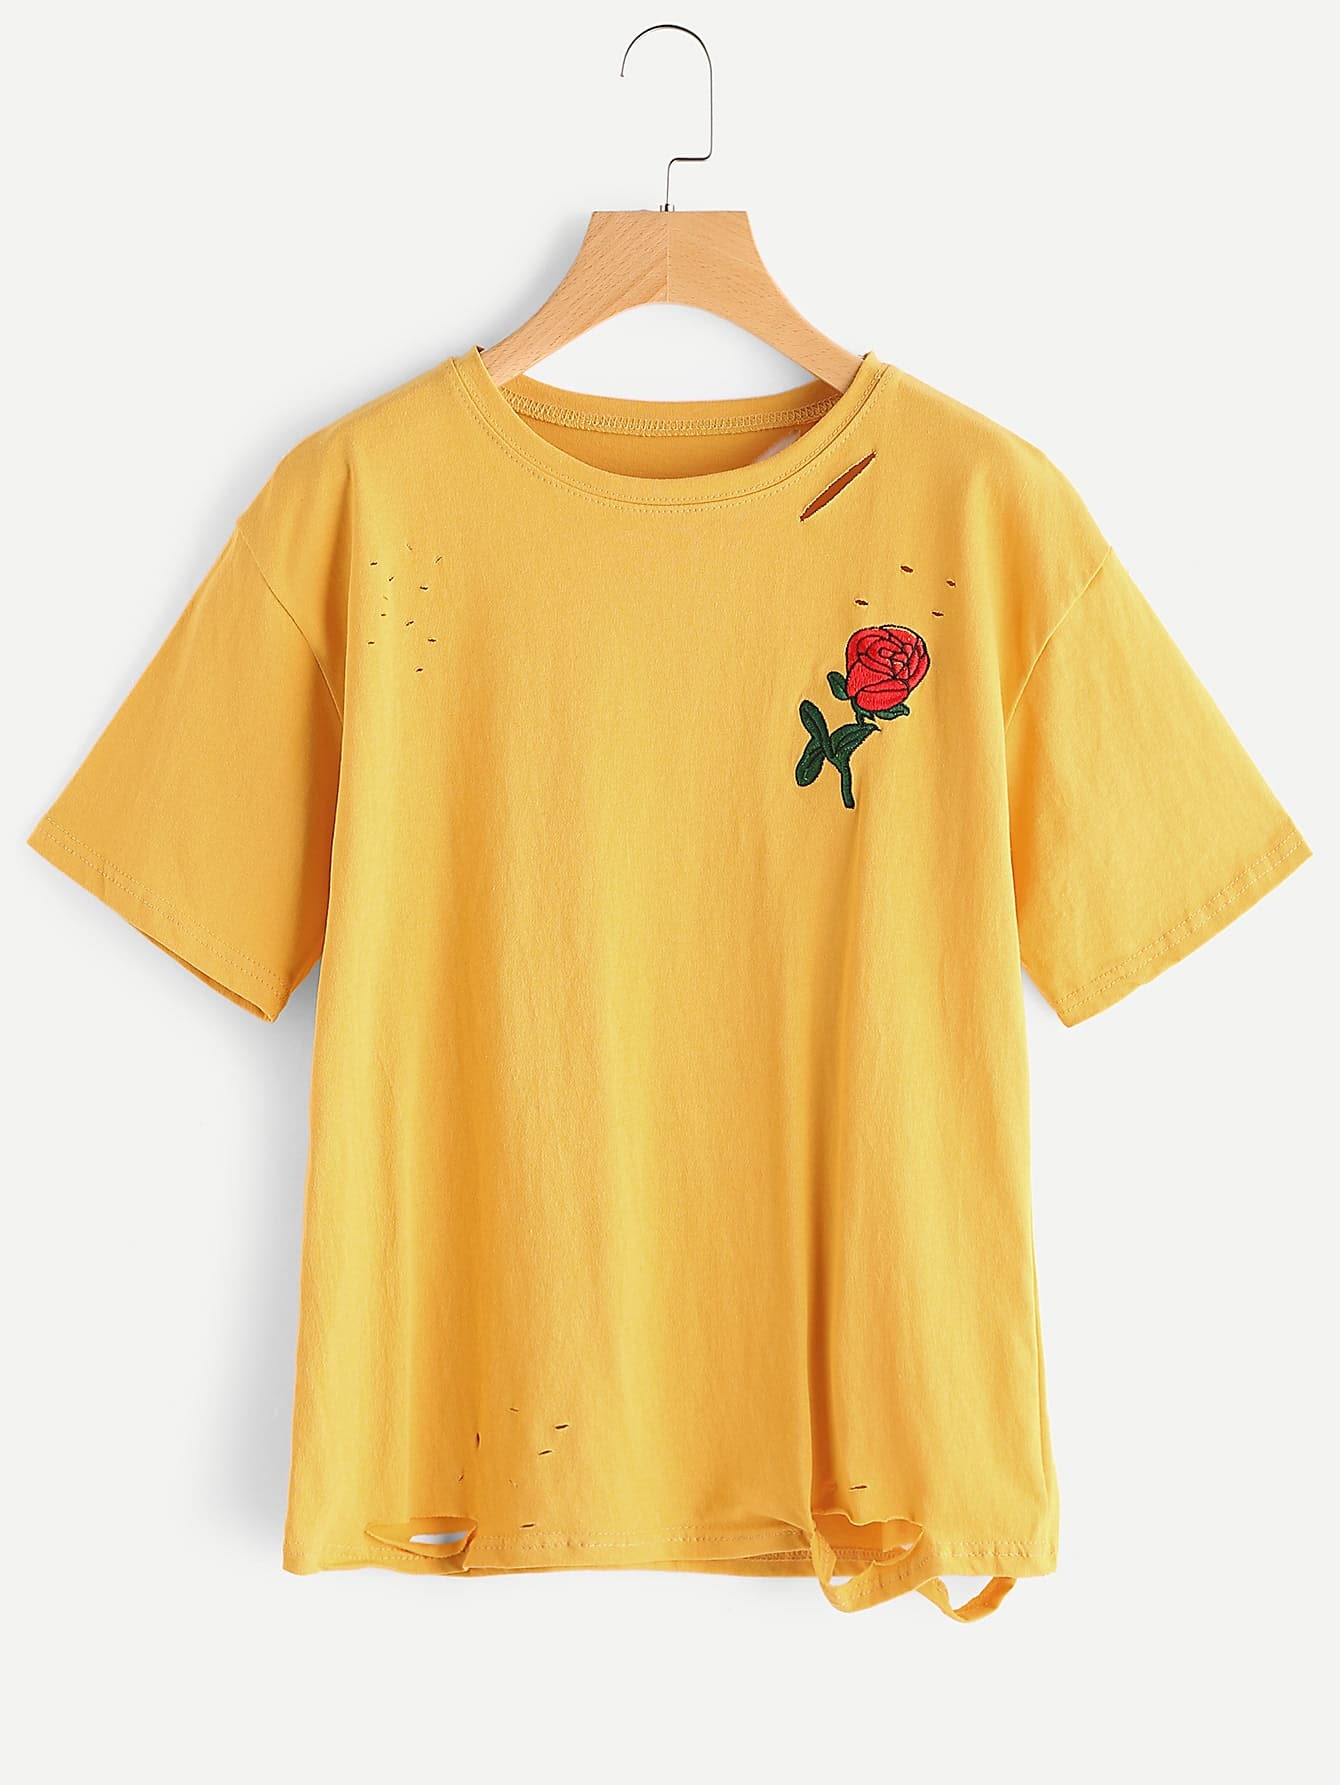 Rose Embroidered Ripped Tshirt SheInSheinside